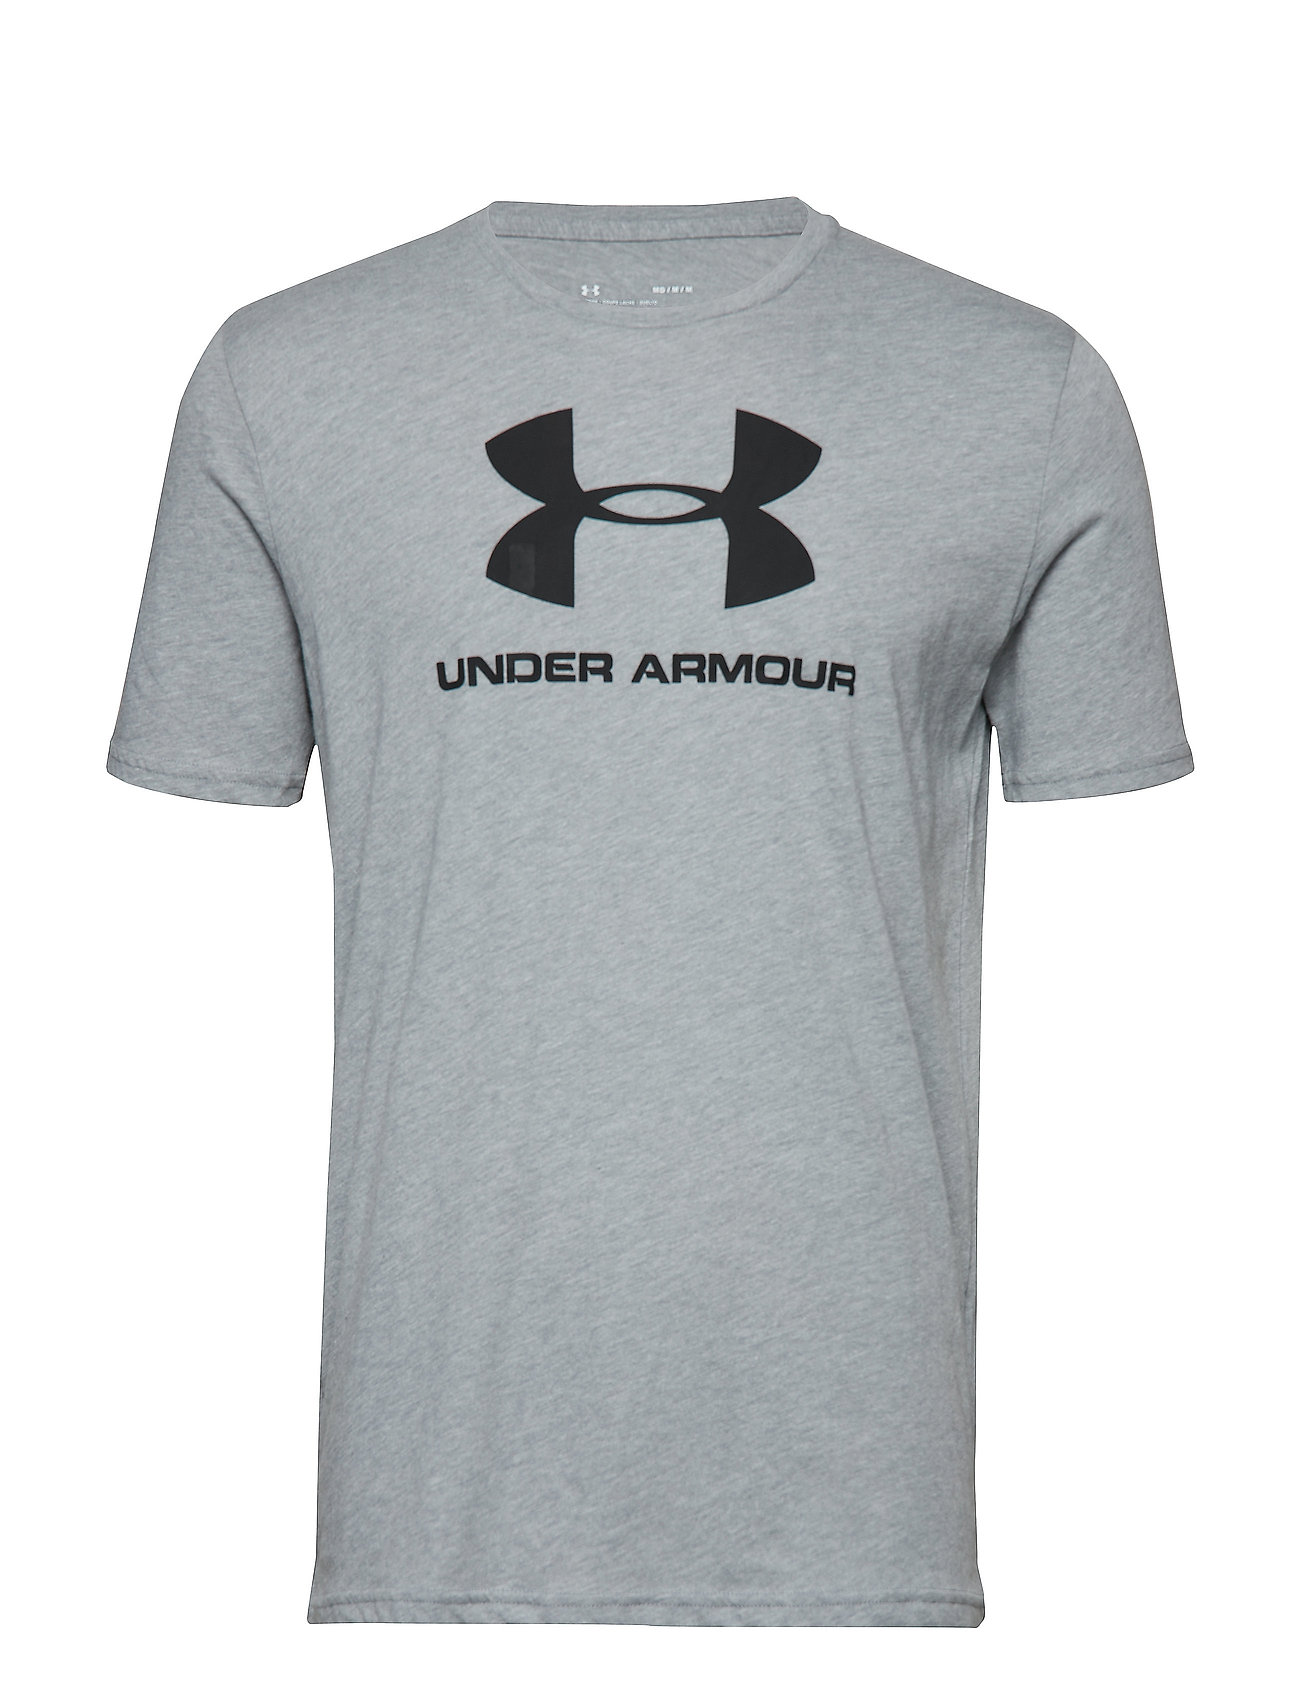 Under Armour SPORTSTYLE LOGO SS - STEEL LIGHT HEATHER